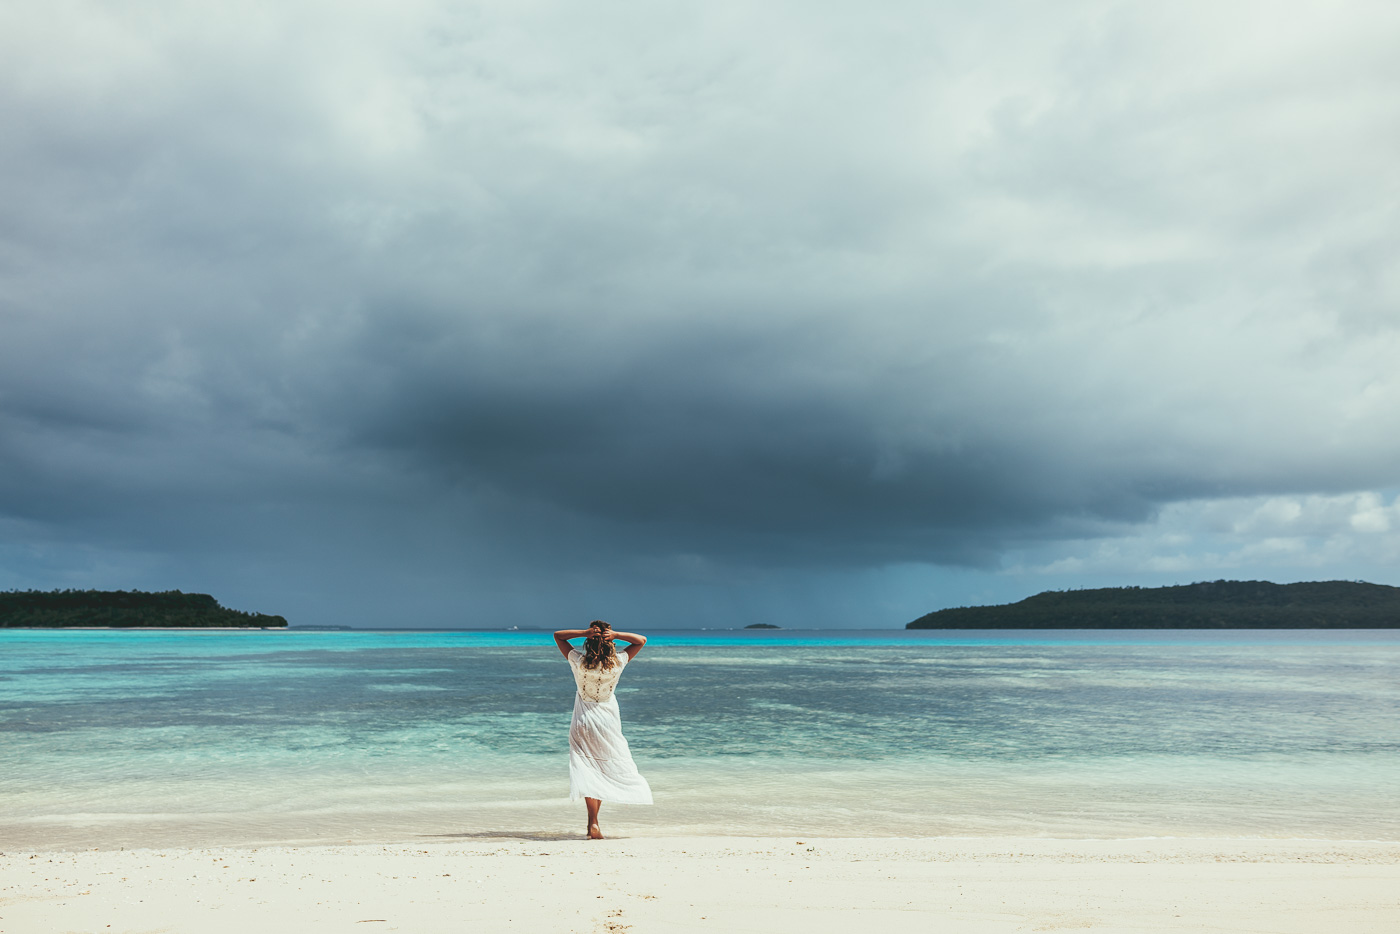 Mel at the beach during a storm in Vava'u Tonga